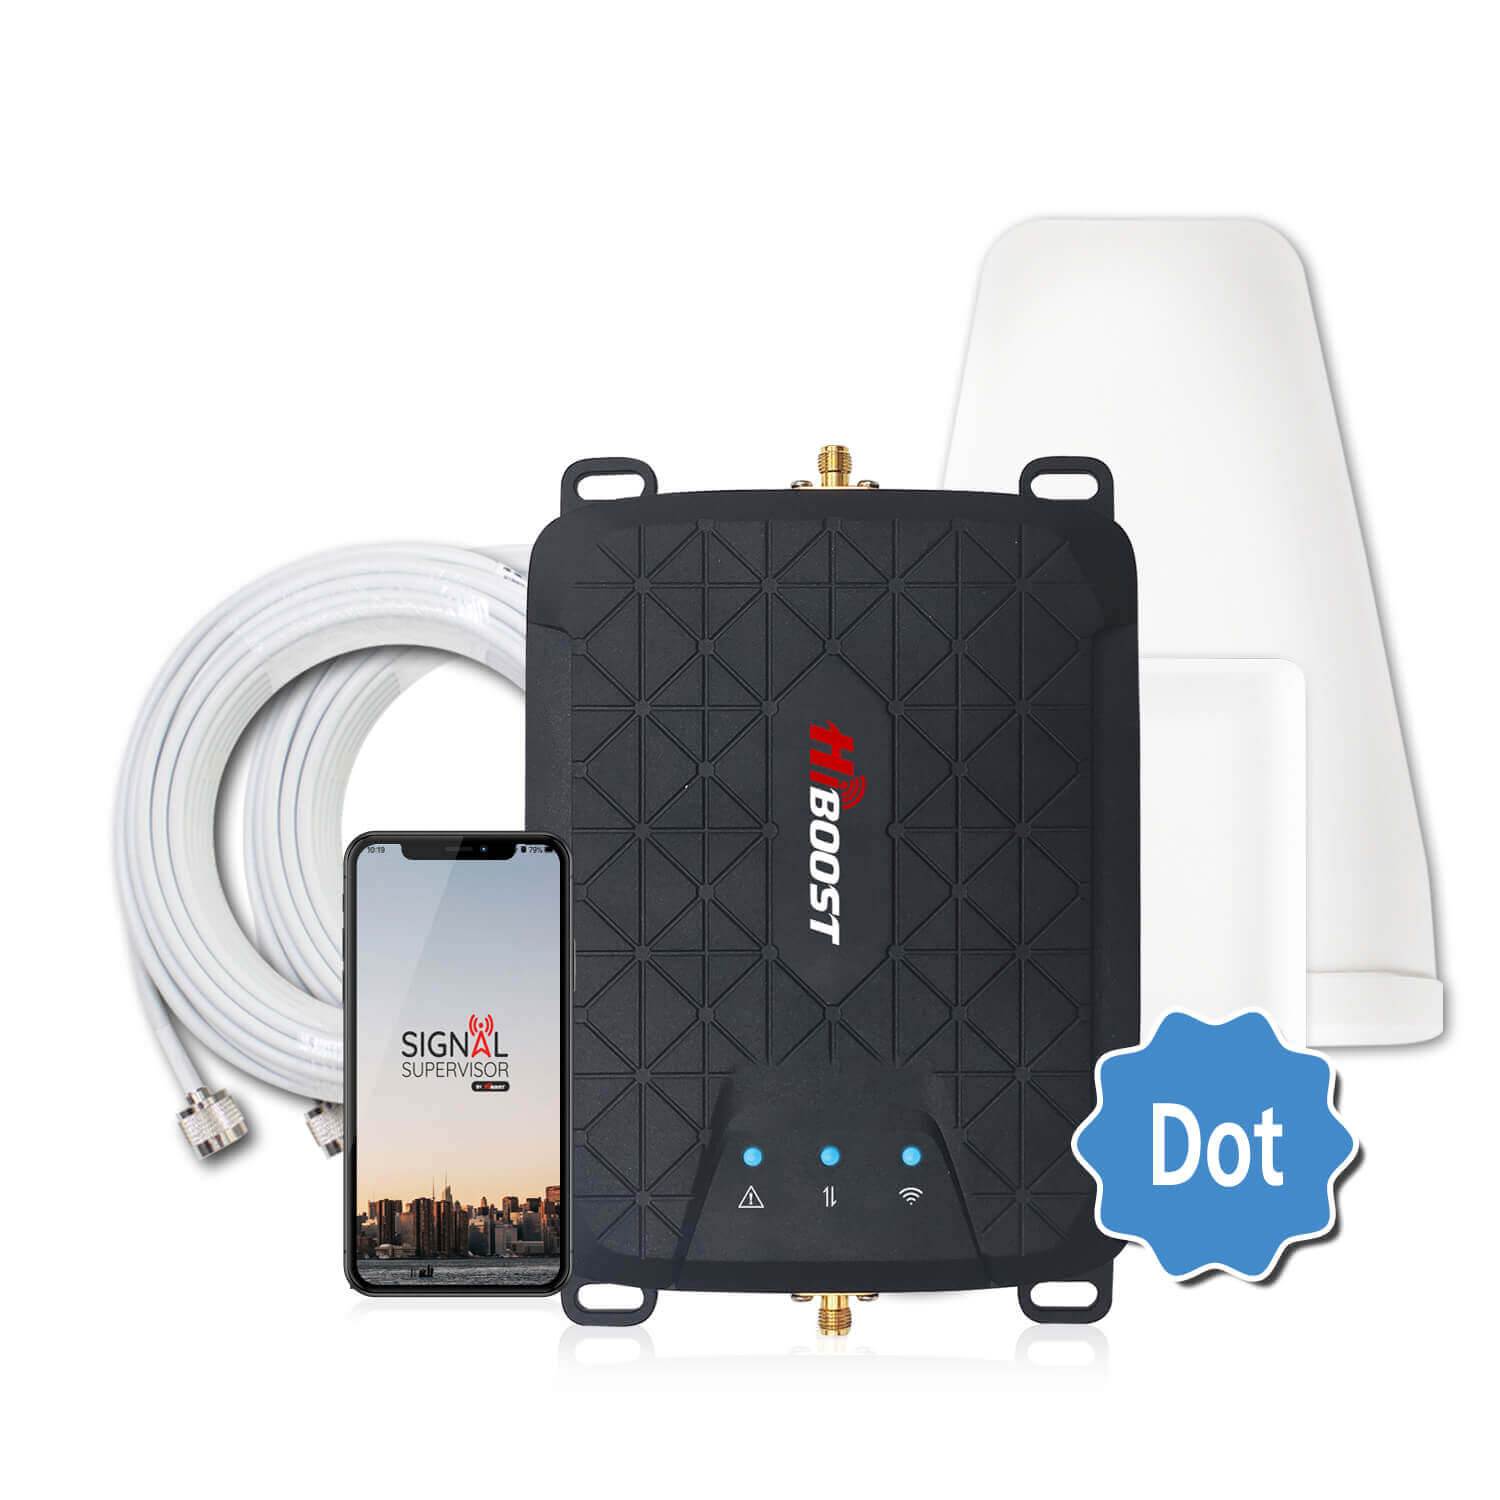 HiBoost-Dot-cell-phone-signal-booster-1